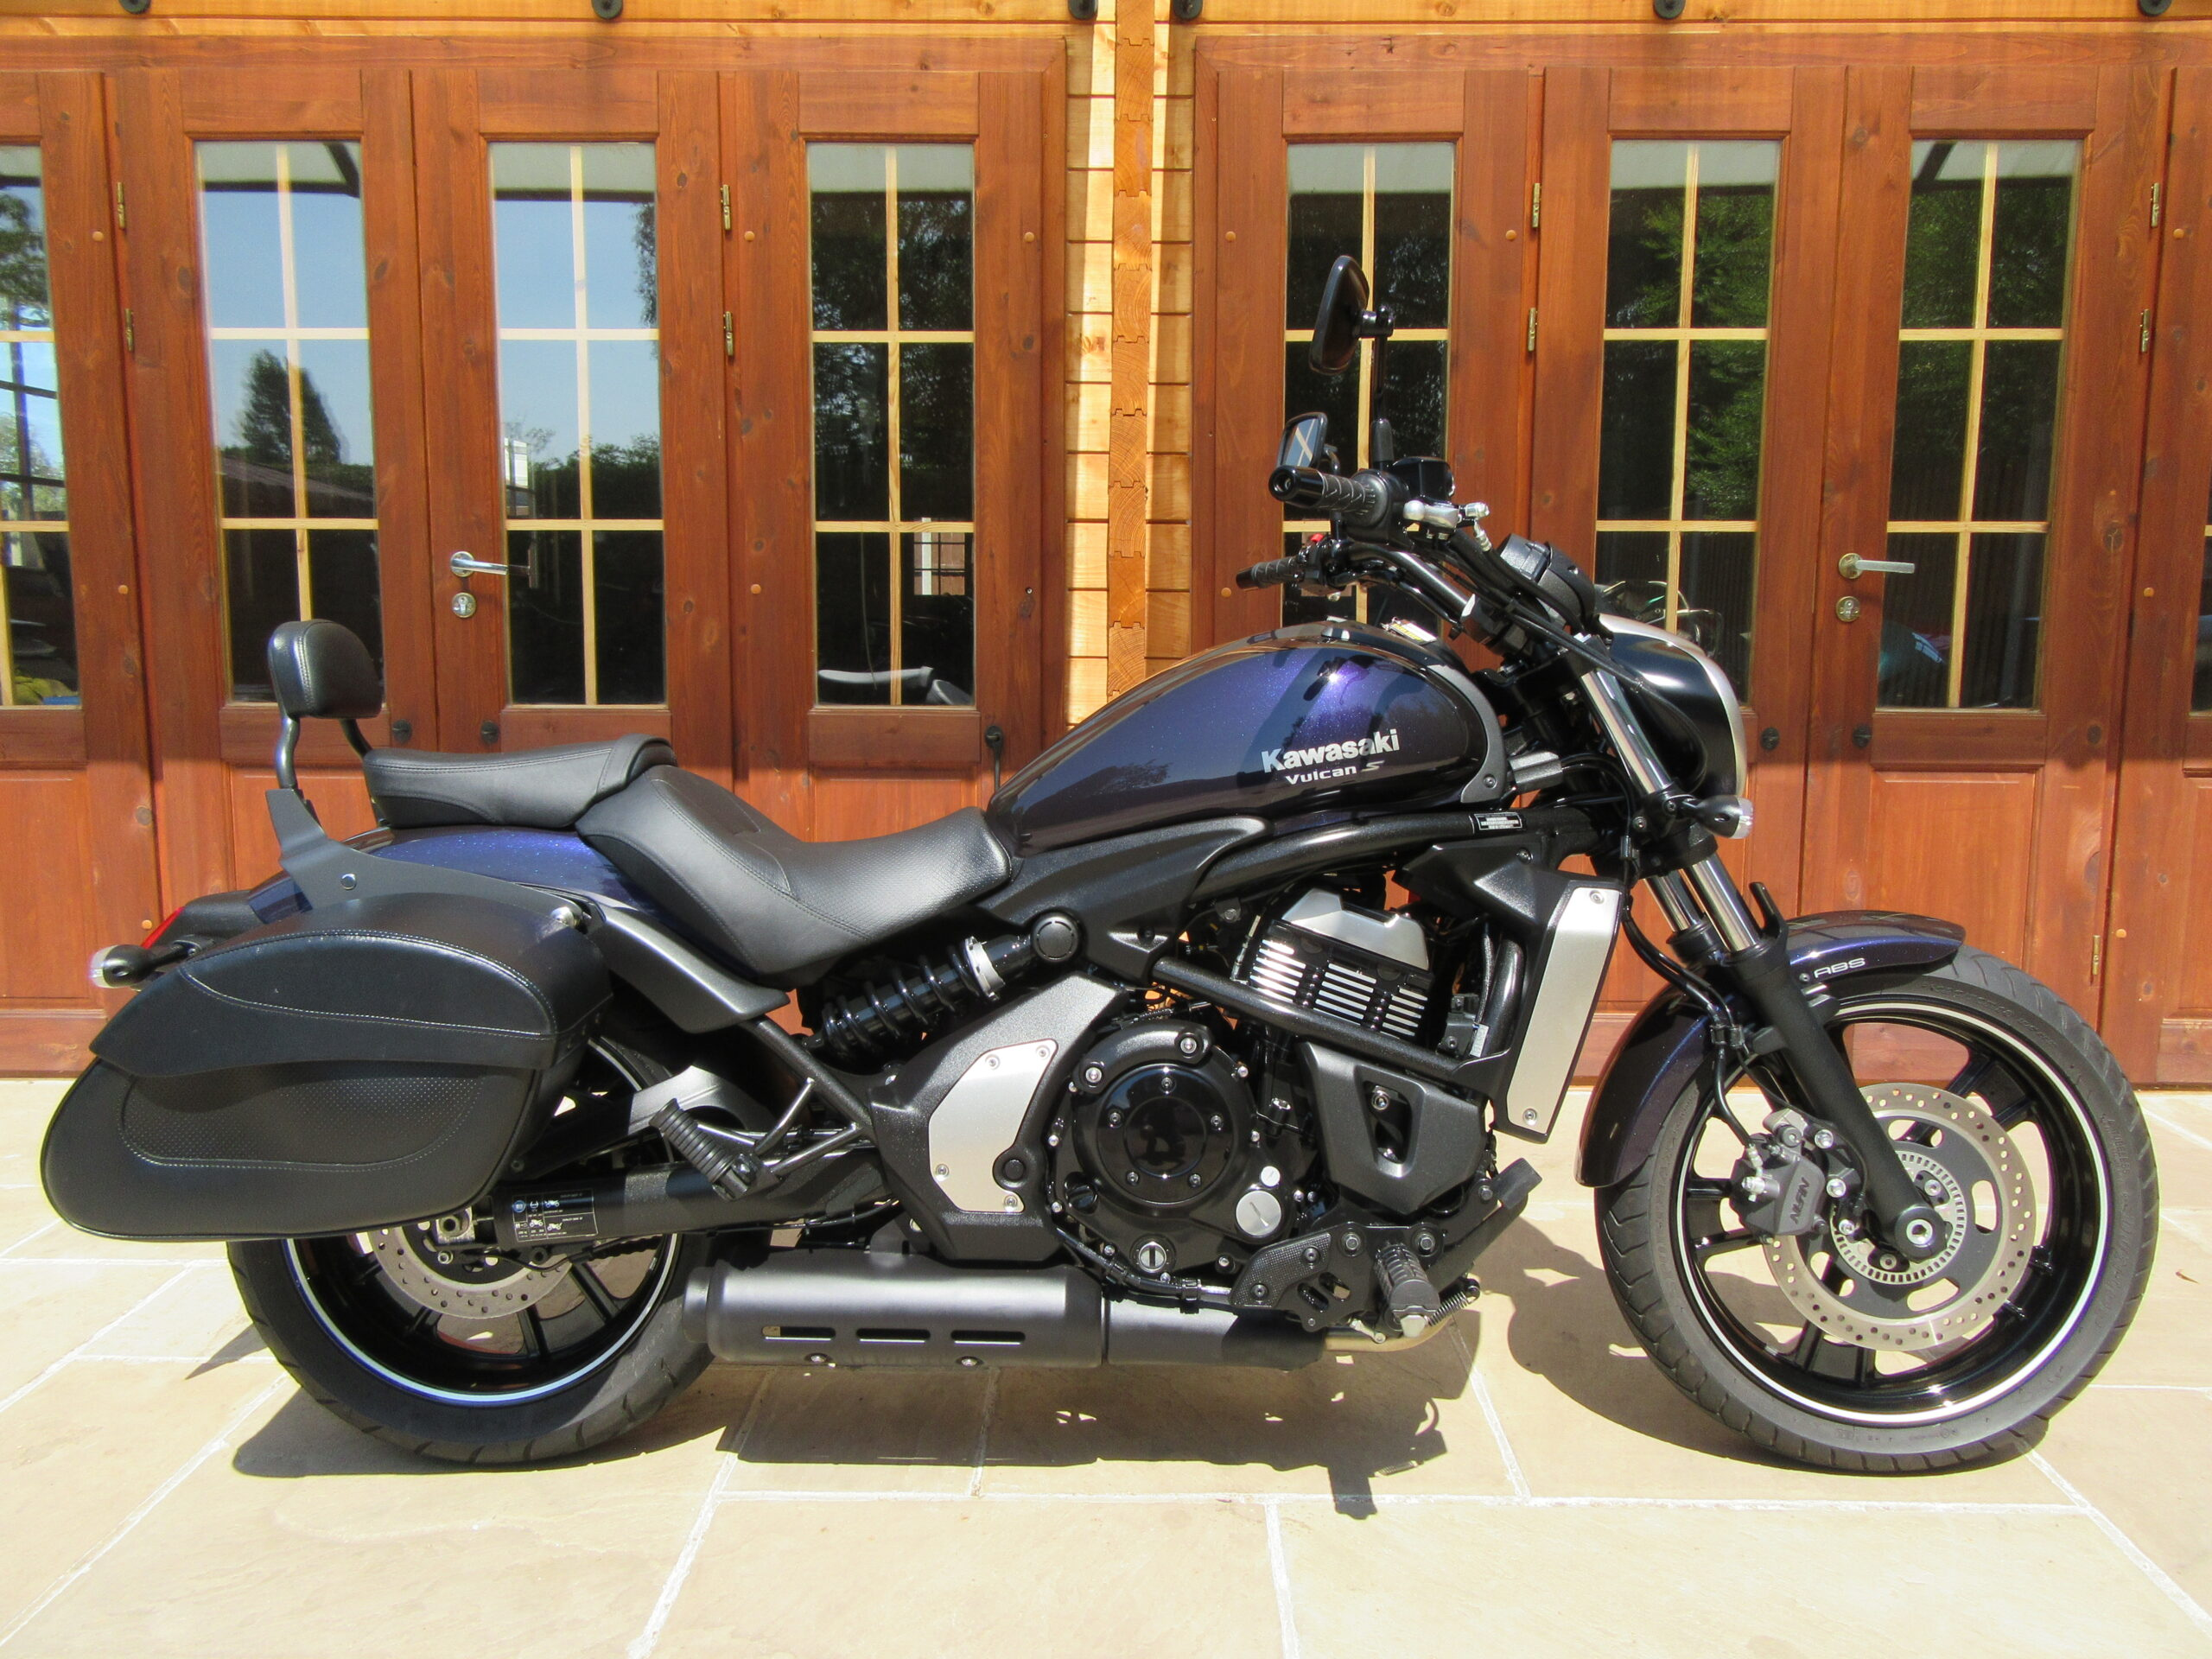 Kawasaki Vulcan S 650 – Only 2300 Miles, SORRY – NOW SOLD!!